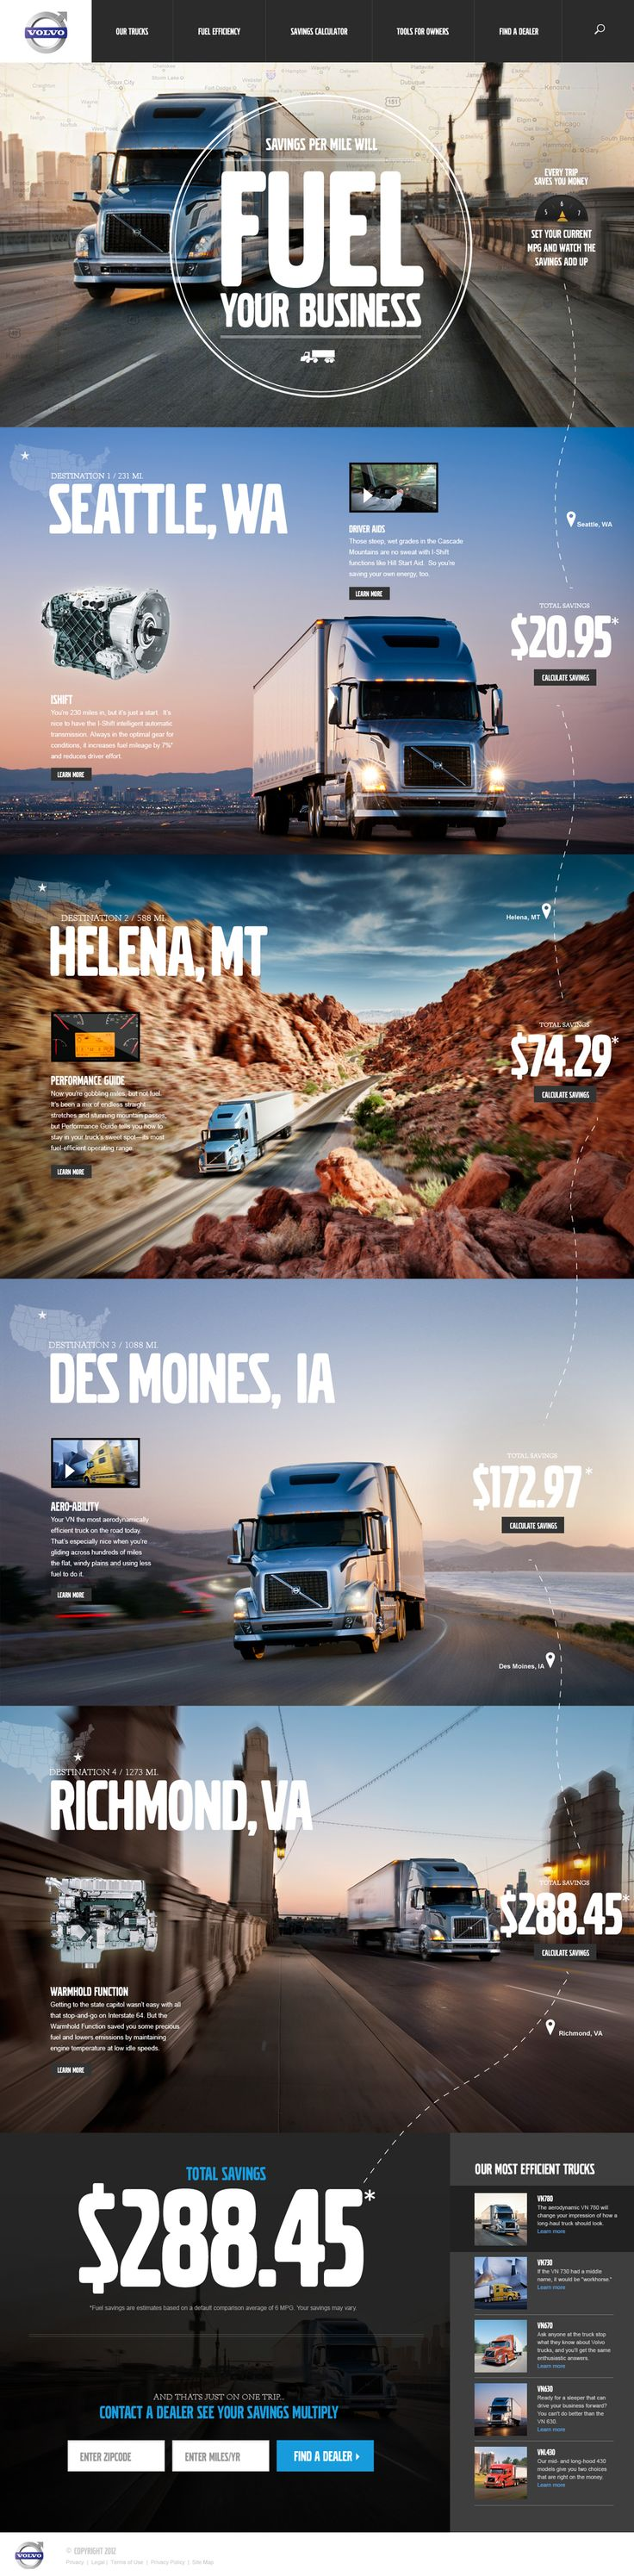 Megan Man: Webdesign, Volvo Trucks, User Interface, Design Service, Web Design Inspiration, Megan Men, Website Design, Design Layout, Trucks Website